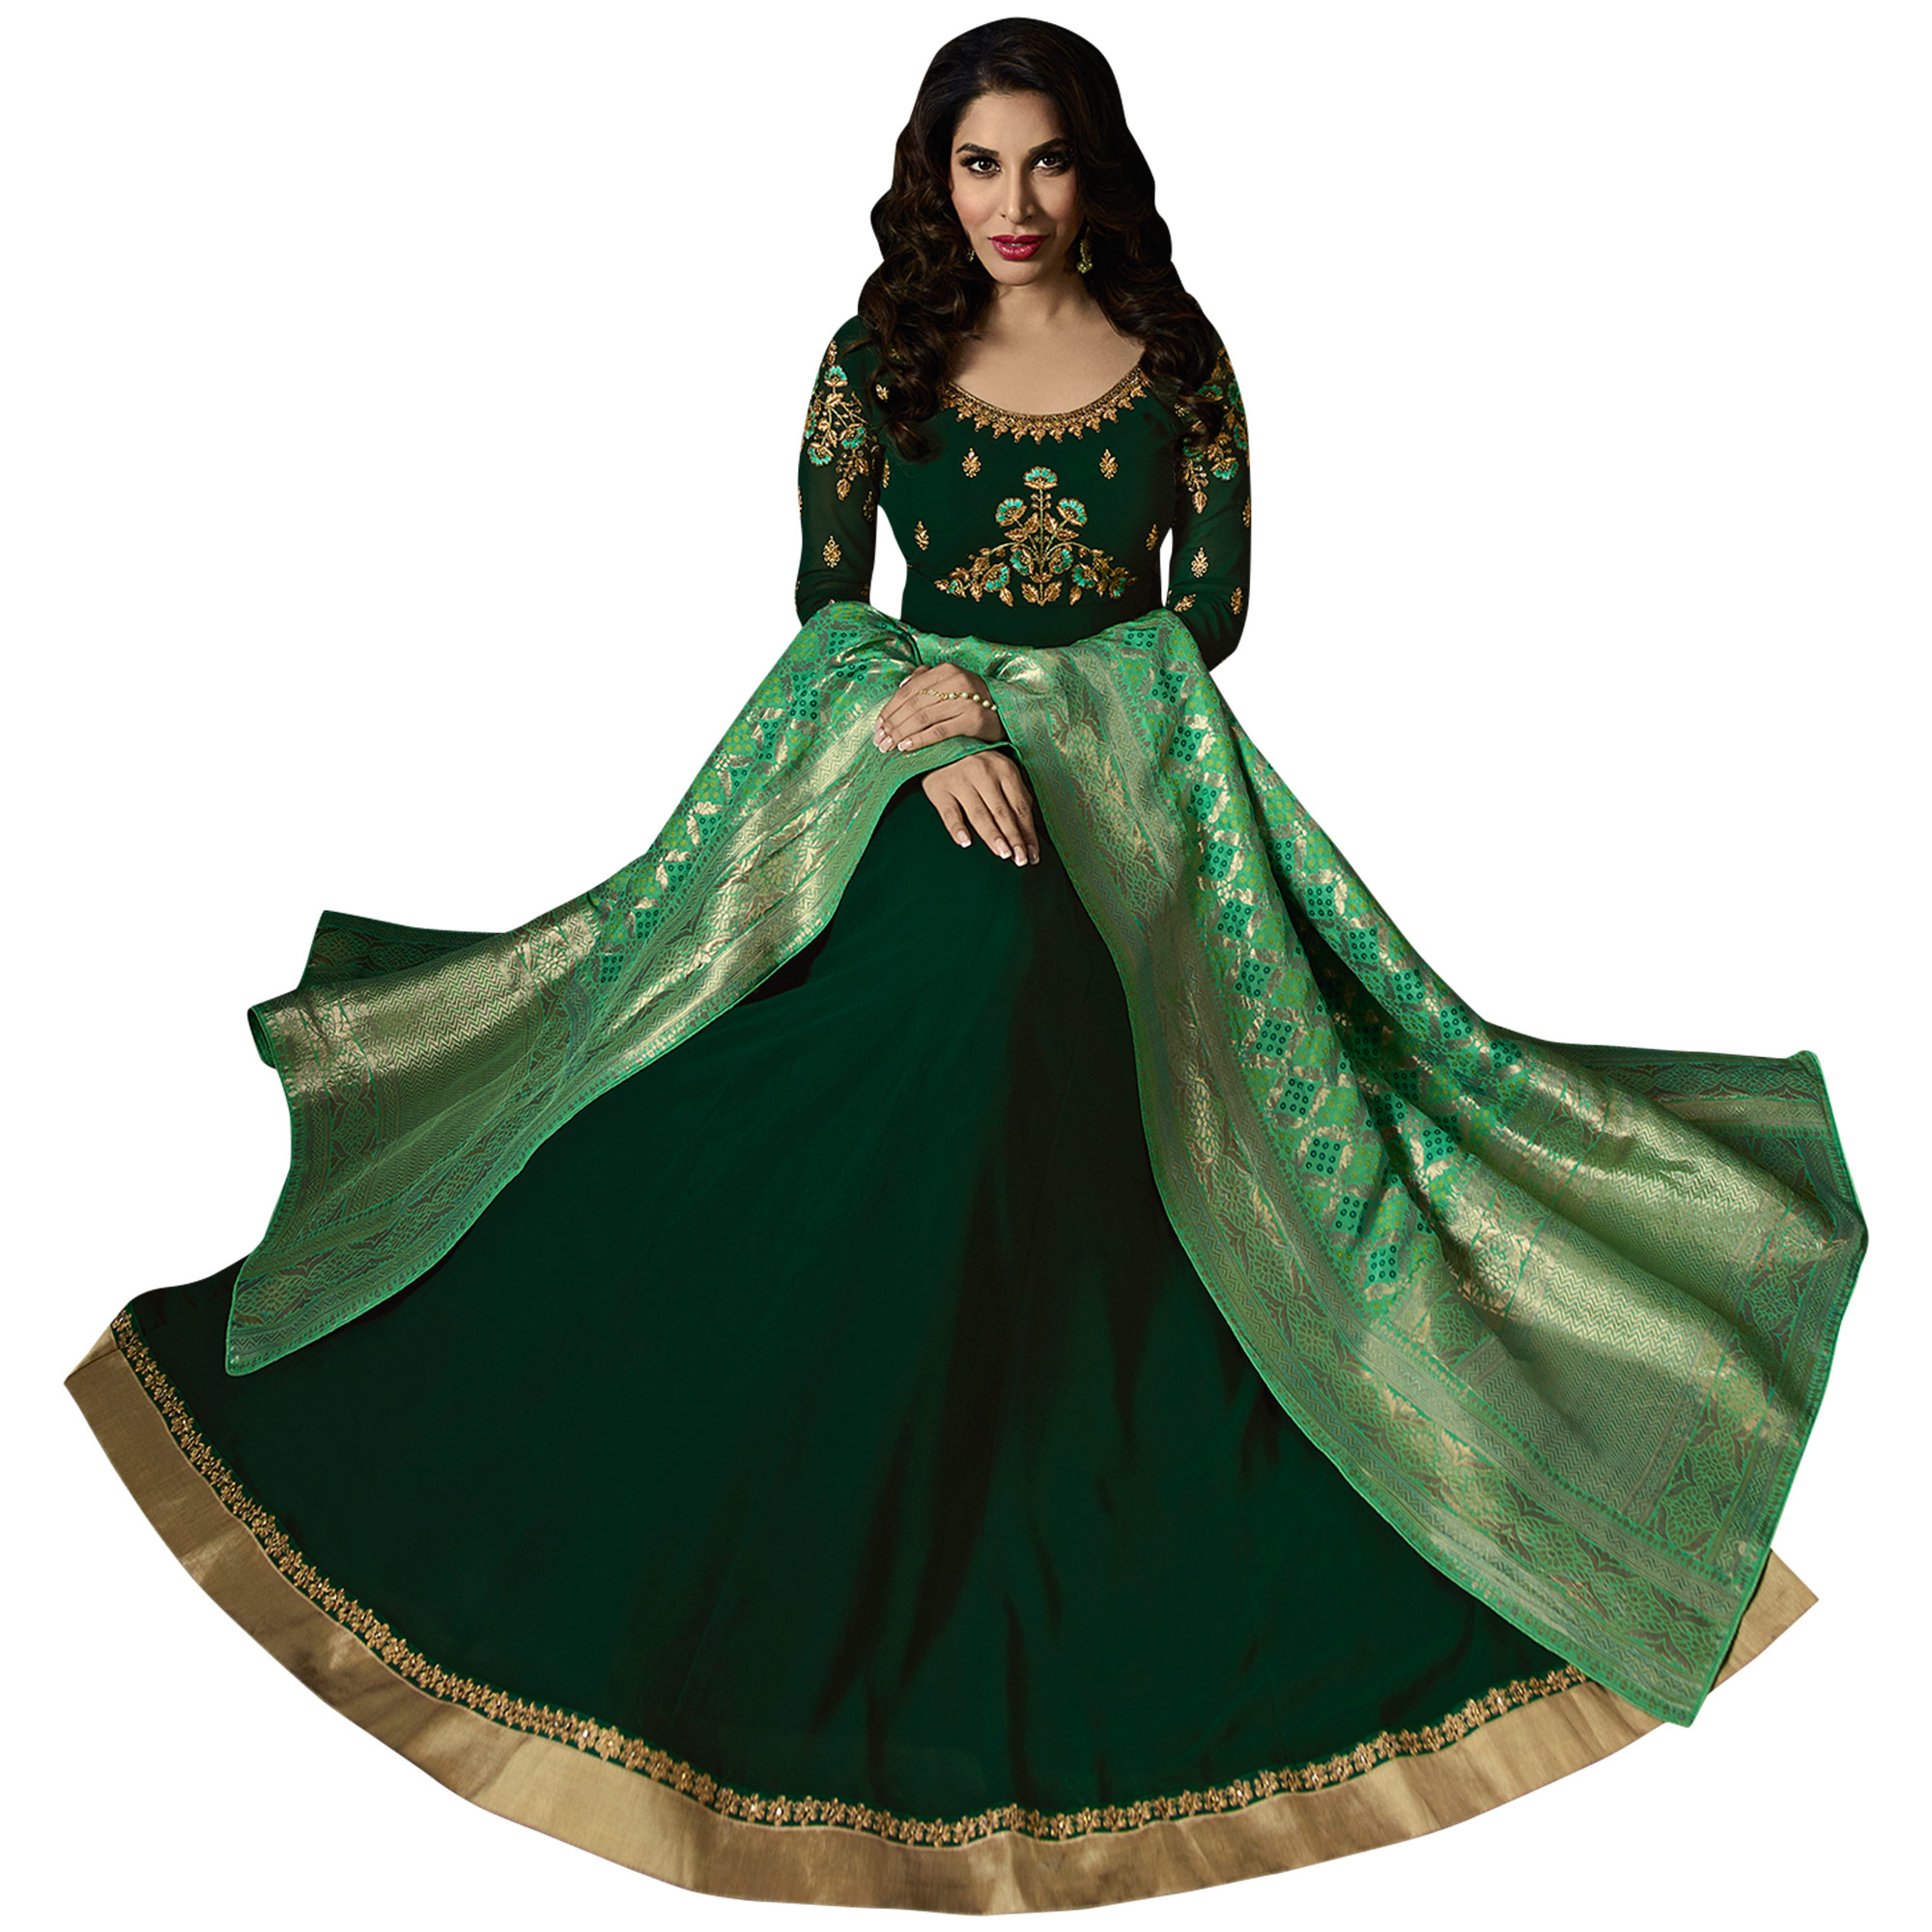 Majestic Dark Green Colored Embroidered Georgette Anarkali Suit With Pure Banarasi Silk Dupatta